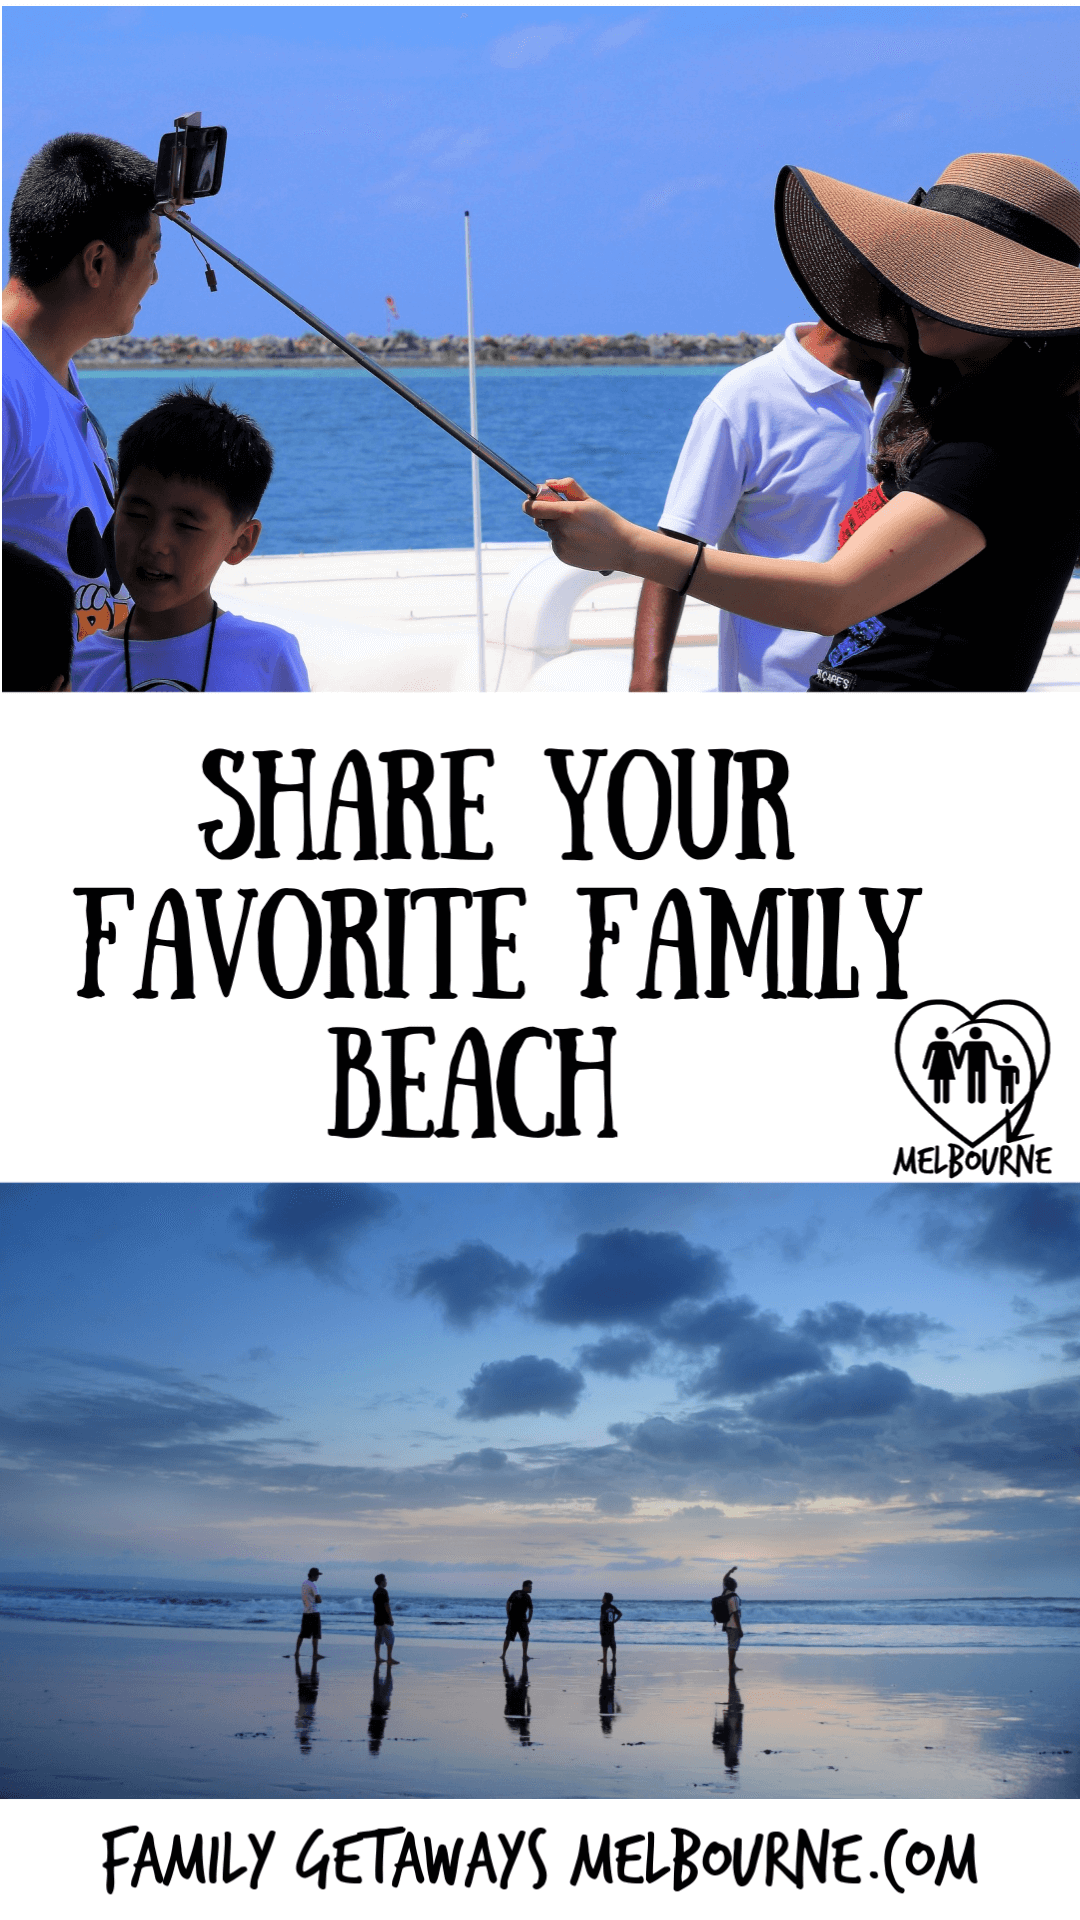 Image to pin to Pinterest for the site page on sharing your favorite family beach story